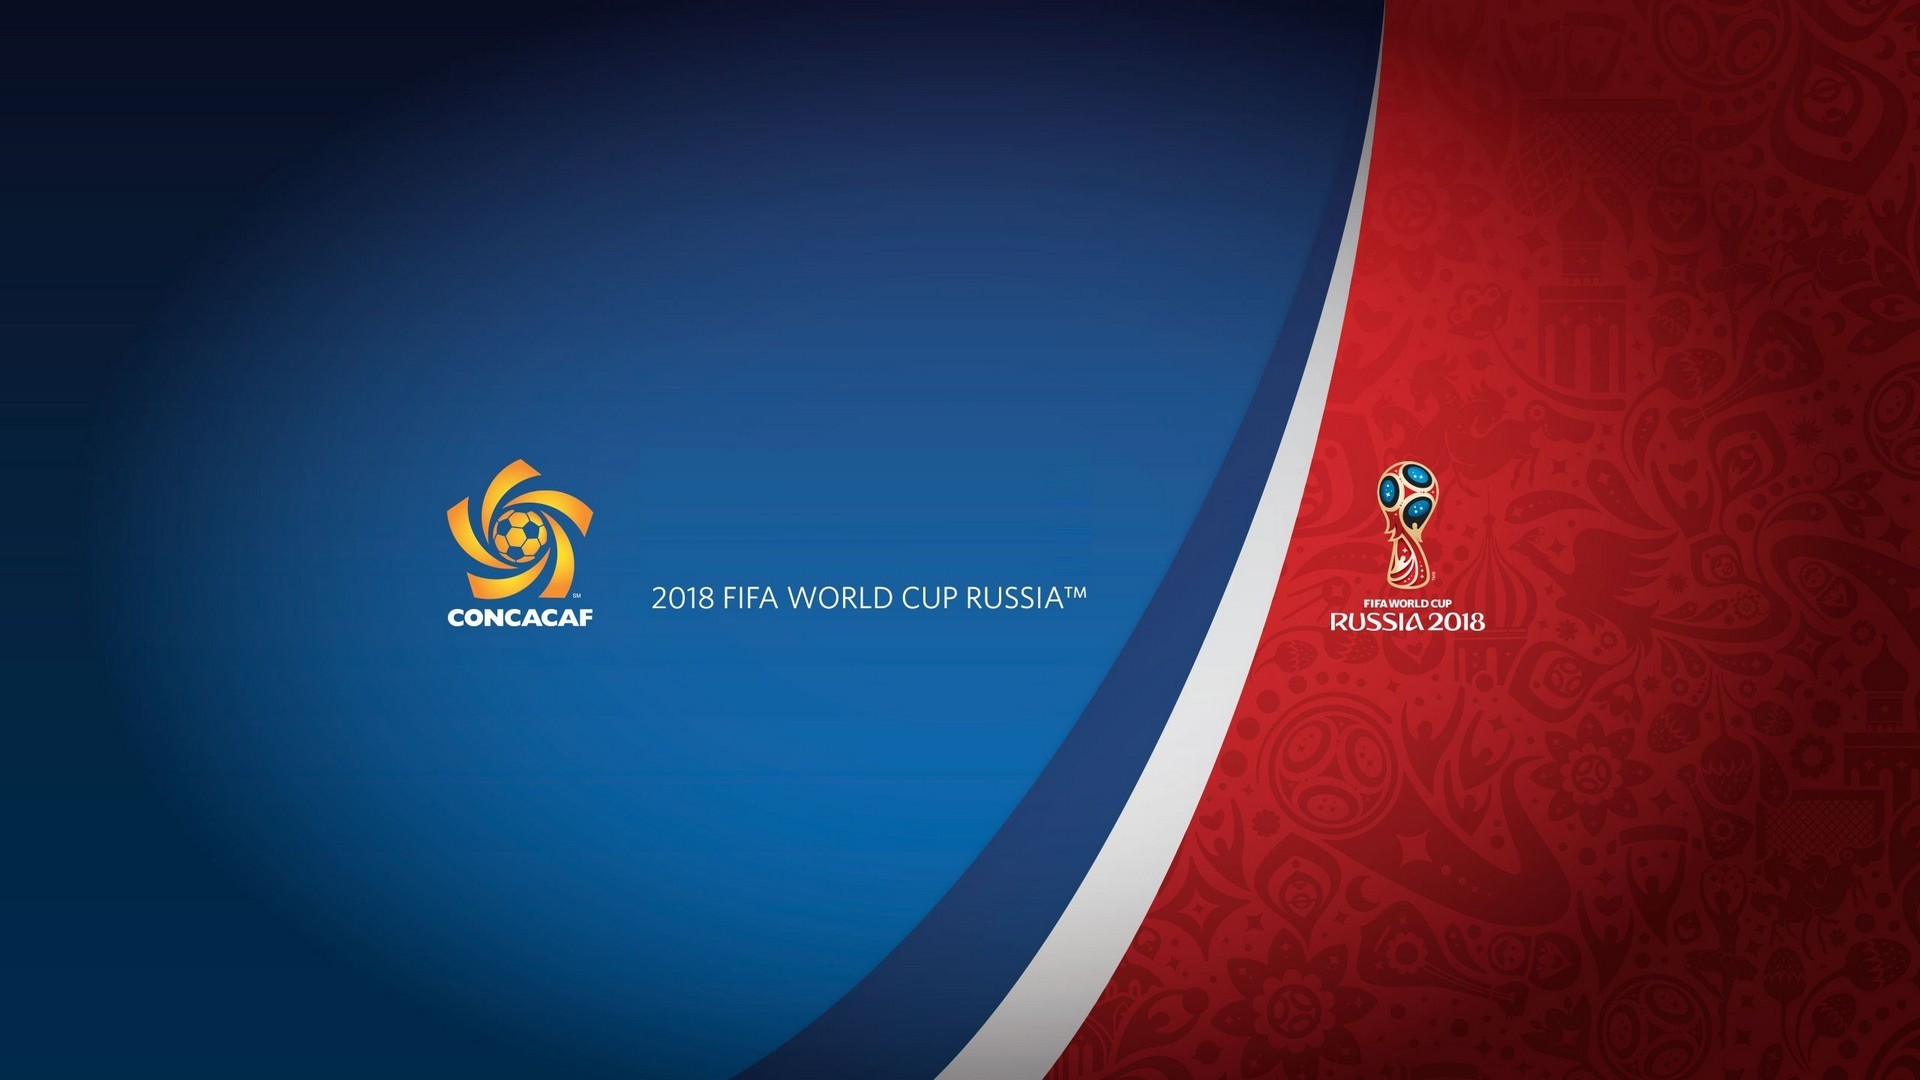 1920x1080 - FIFA World Cup 2018 Wallpapers 8